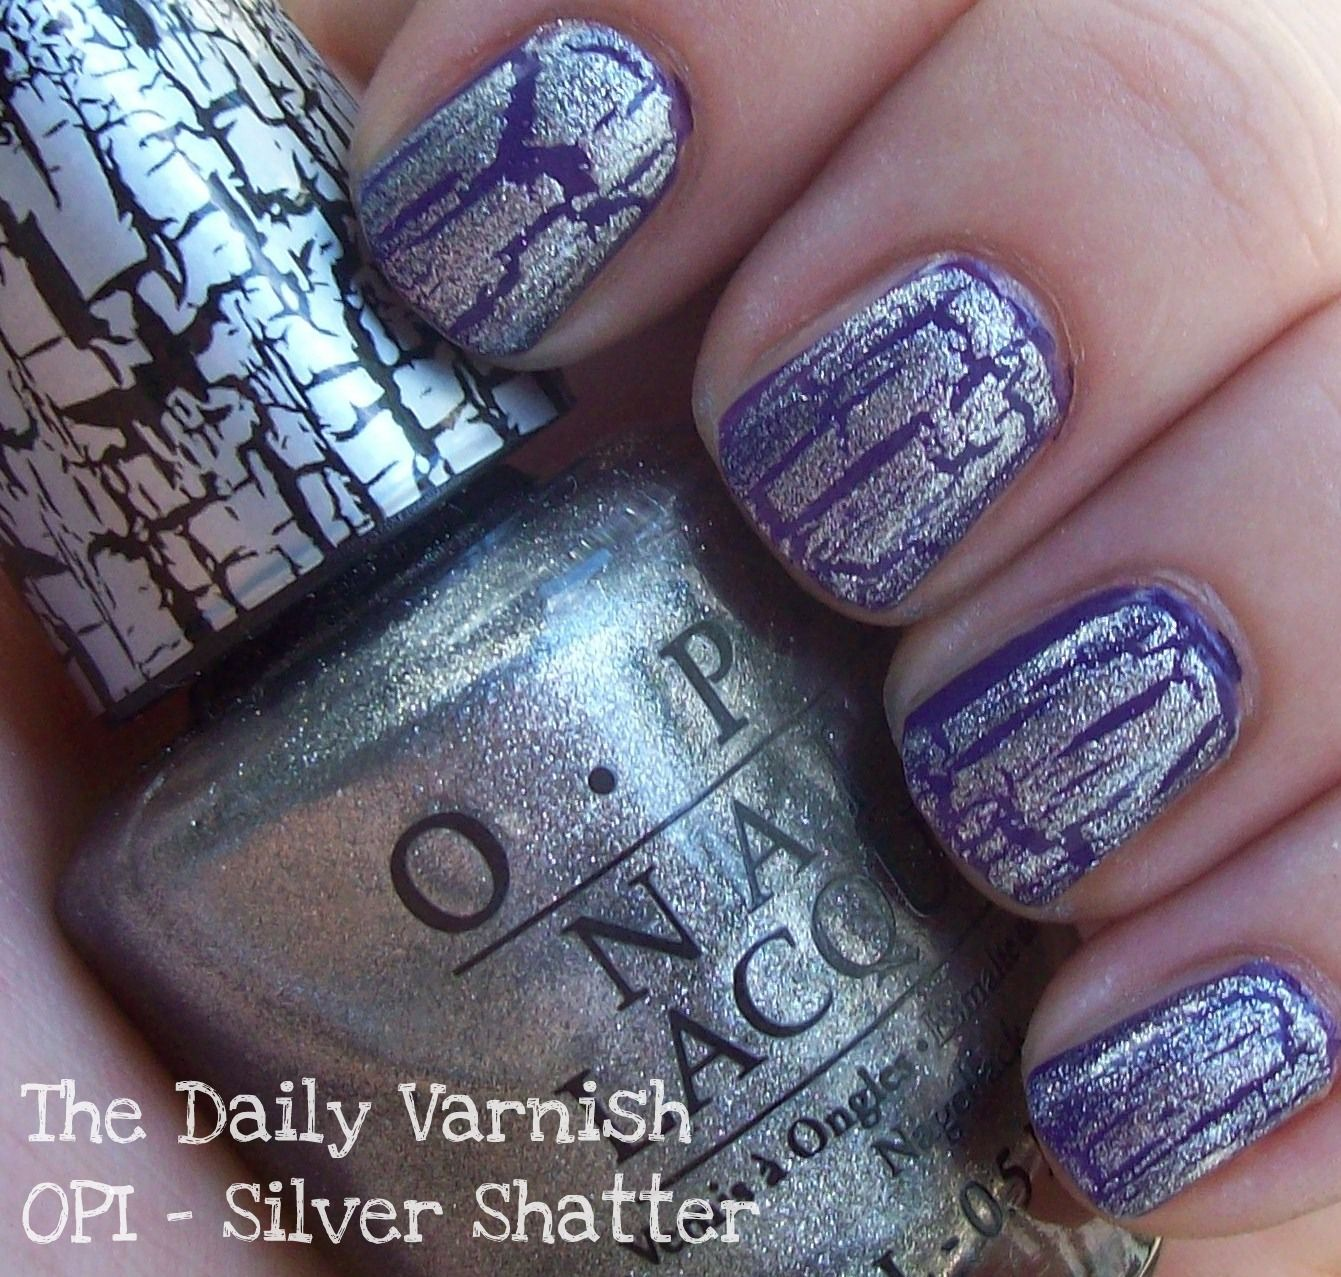 OPI - Silver Shatter over China Glaze Grape Pop...Why yes ...